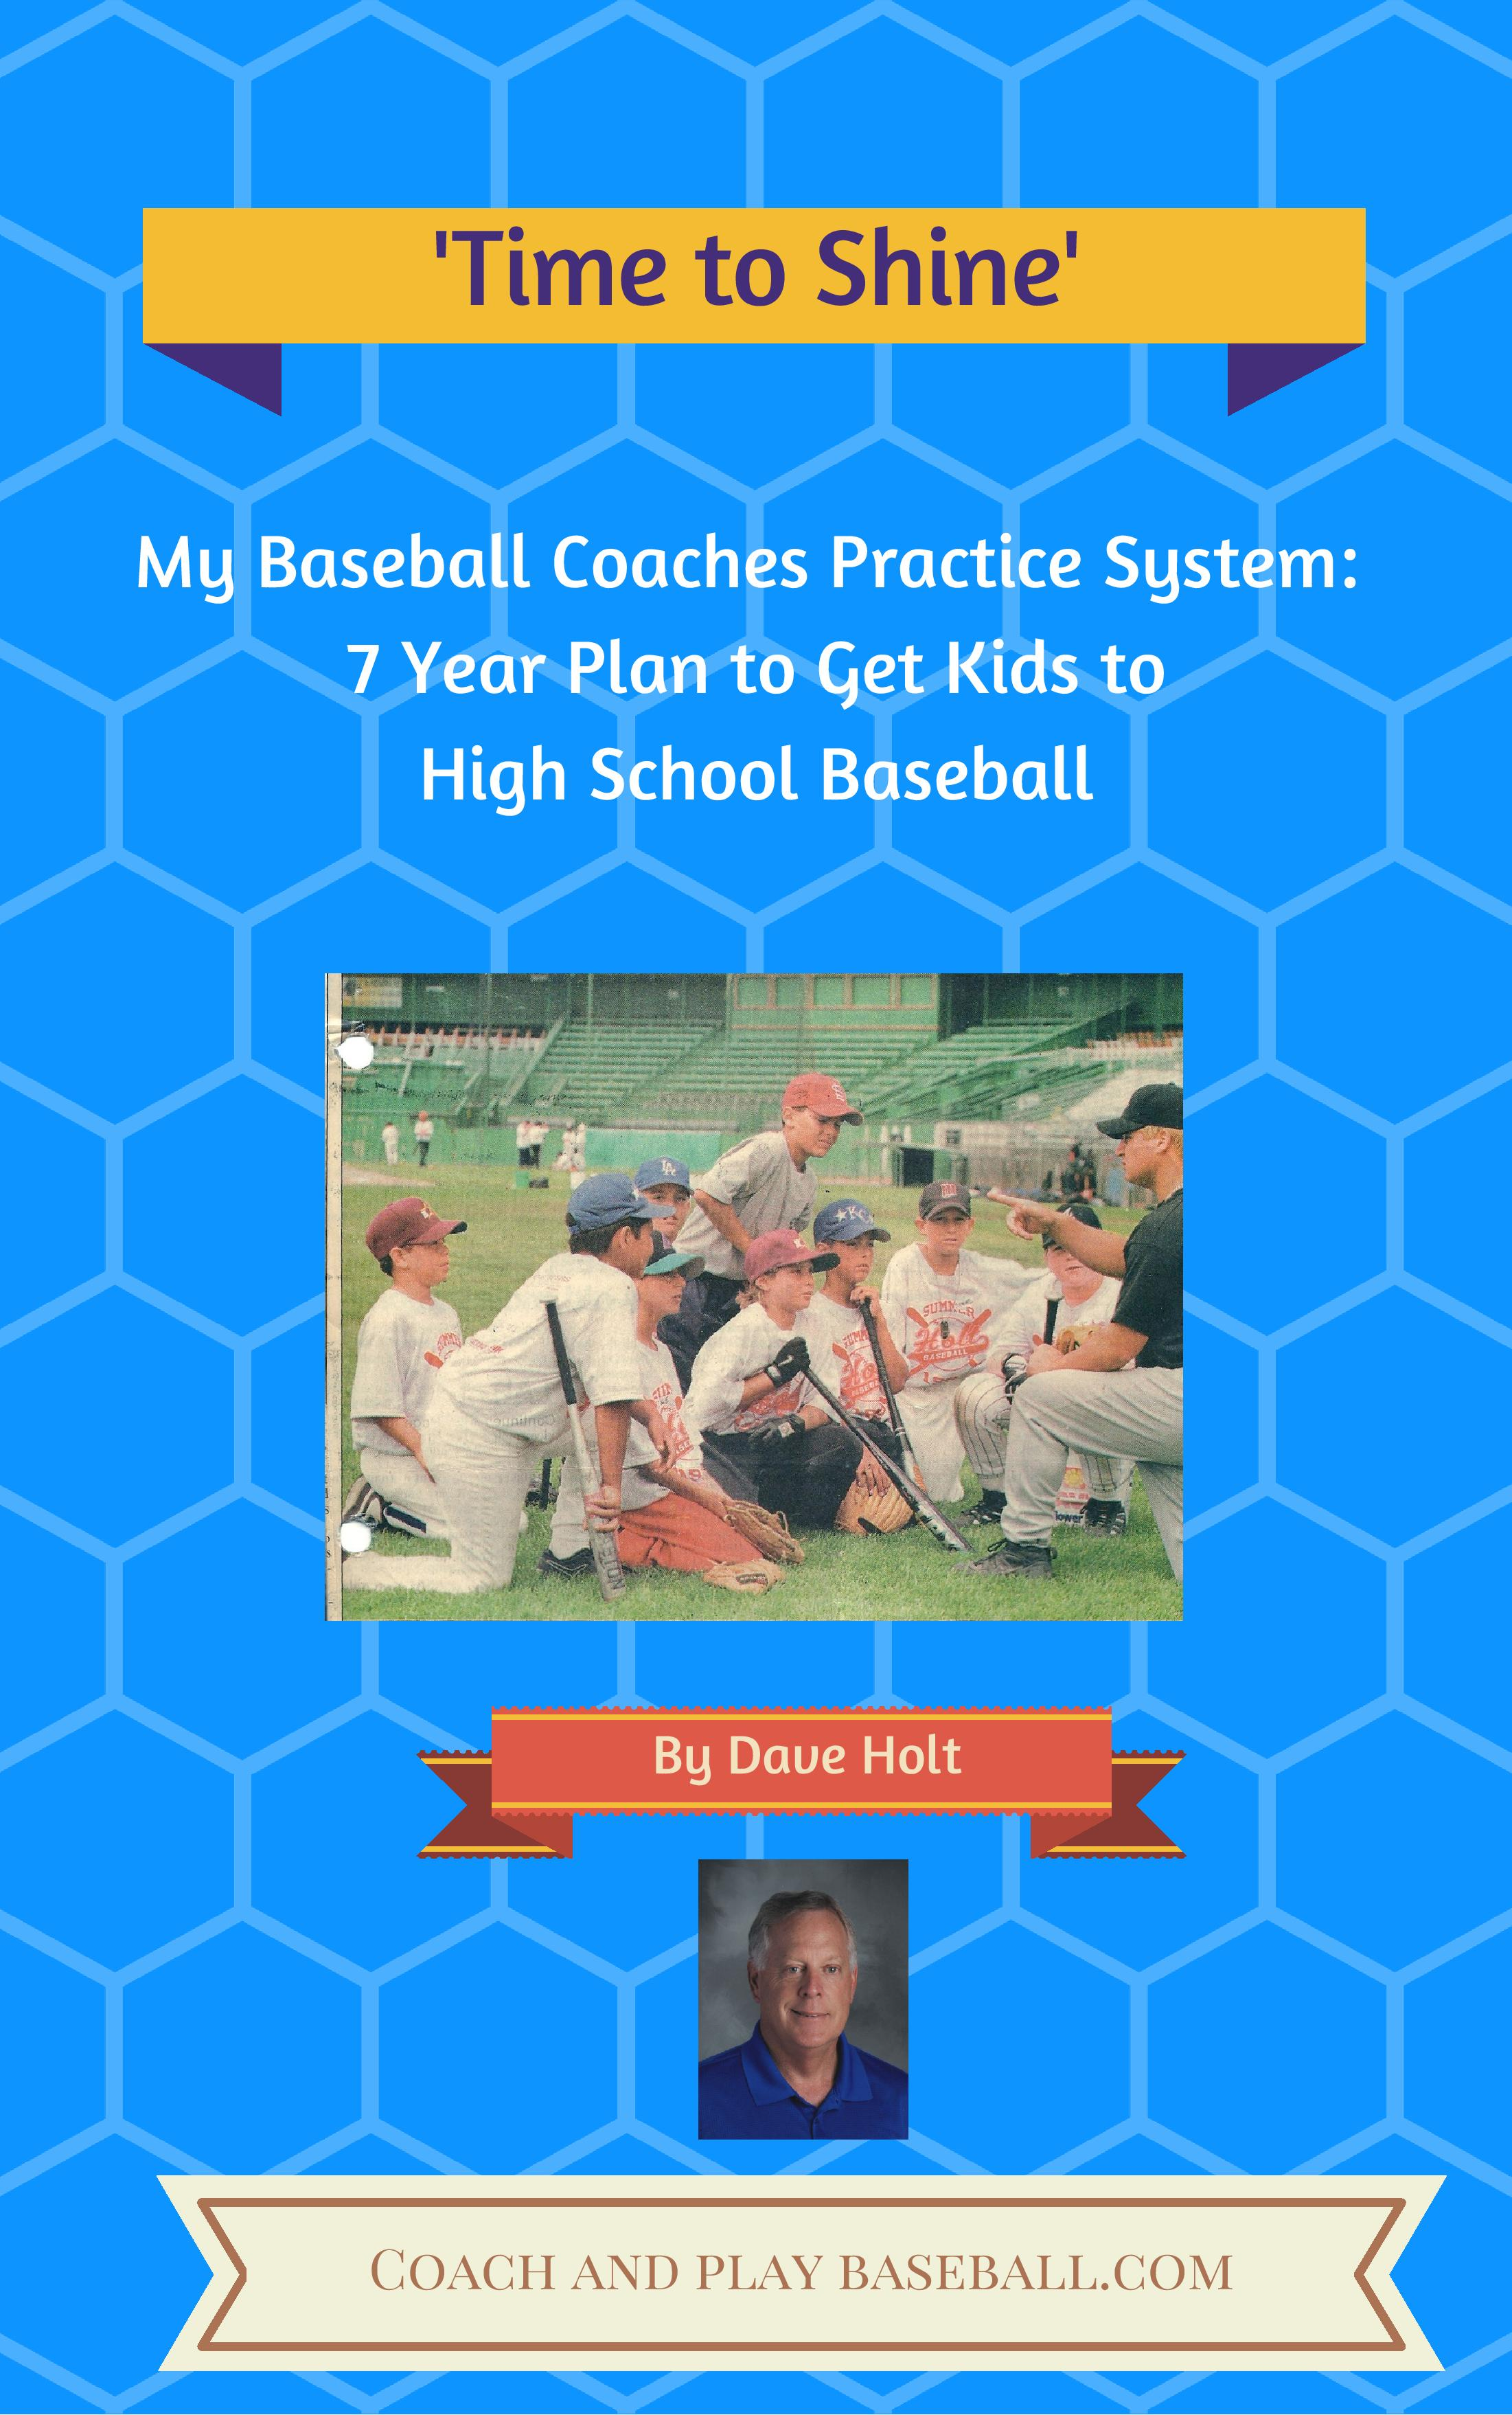 Time to Shine: My Baseball coaches practice system to Win the 7 Year Battle to Reach High School Baseball